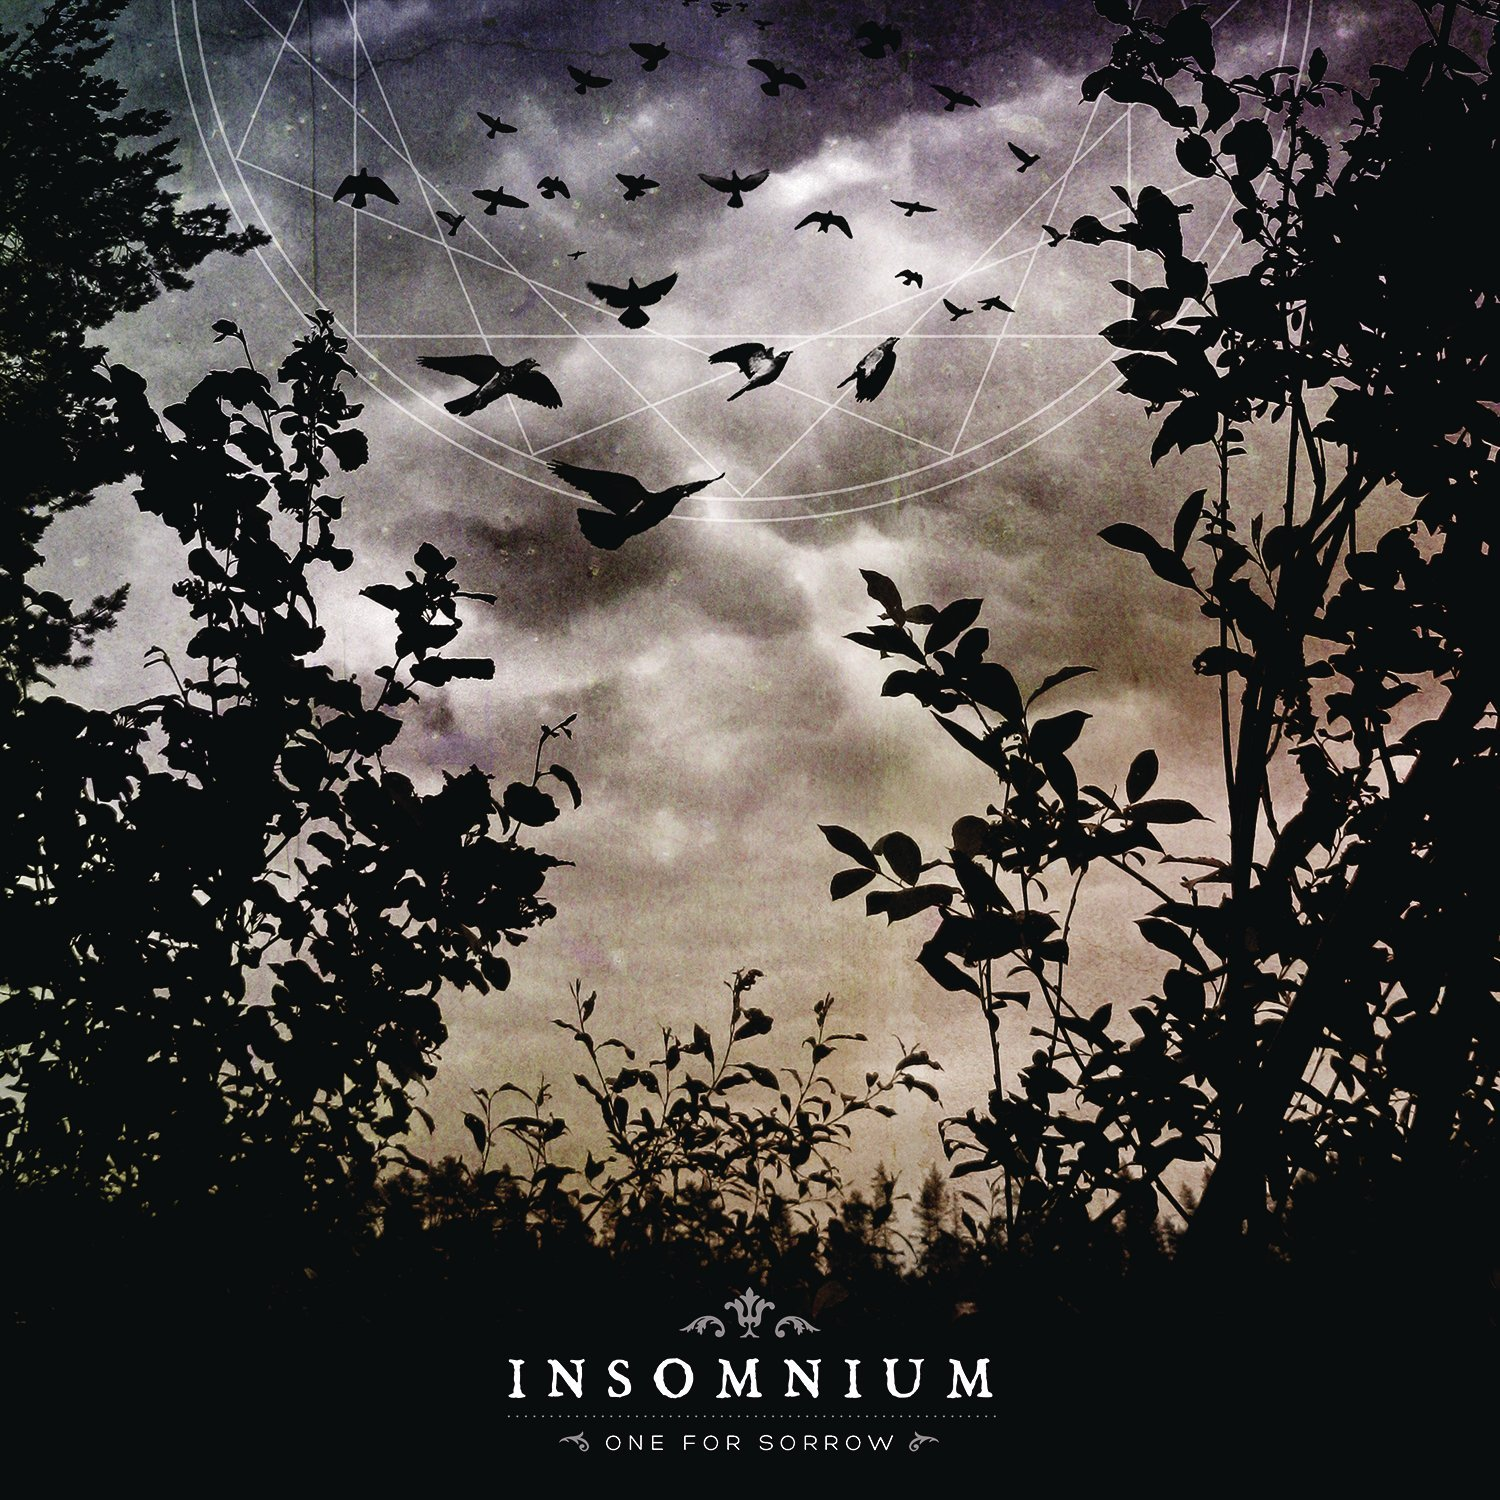 Insomnium - One for Sorrow 2018 [2LP]